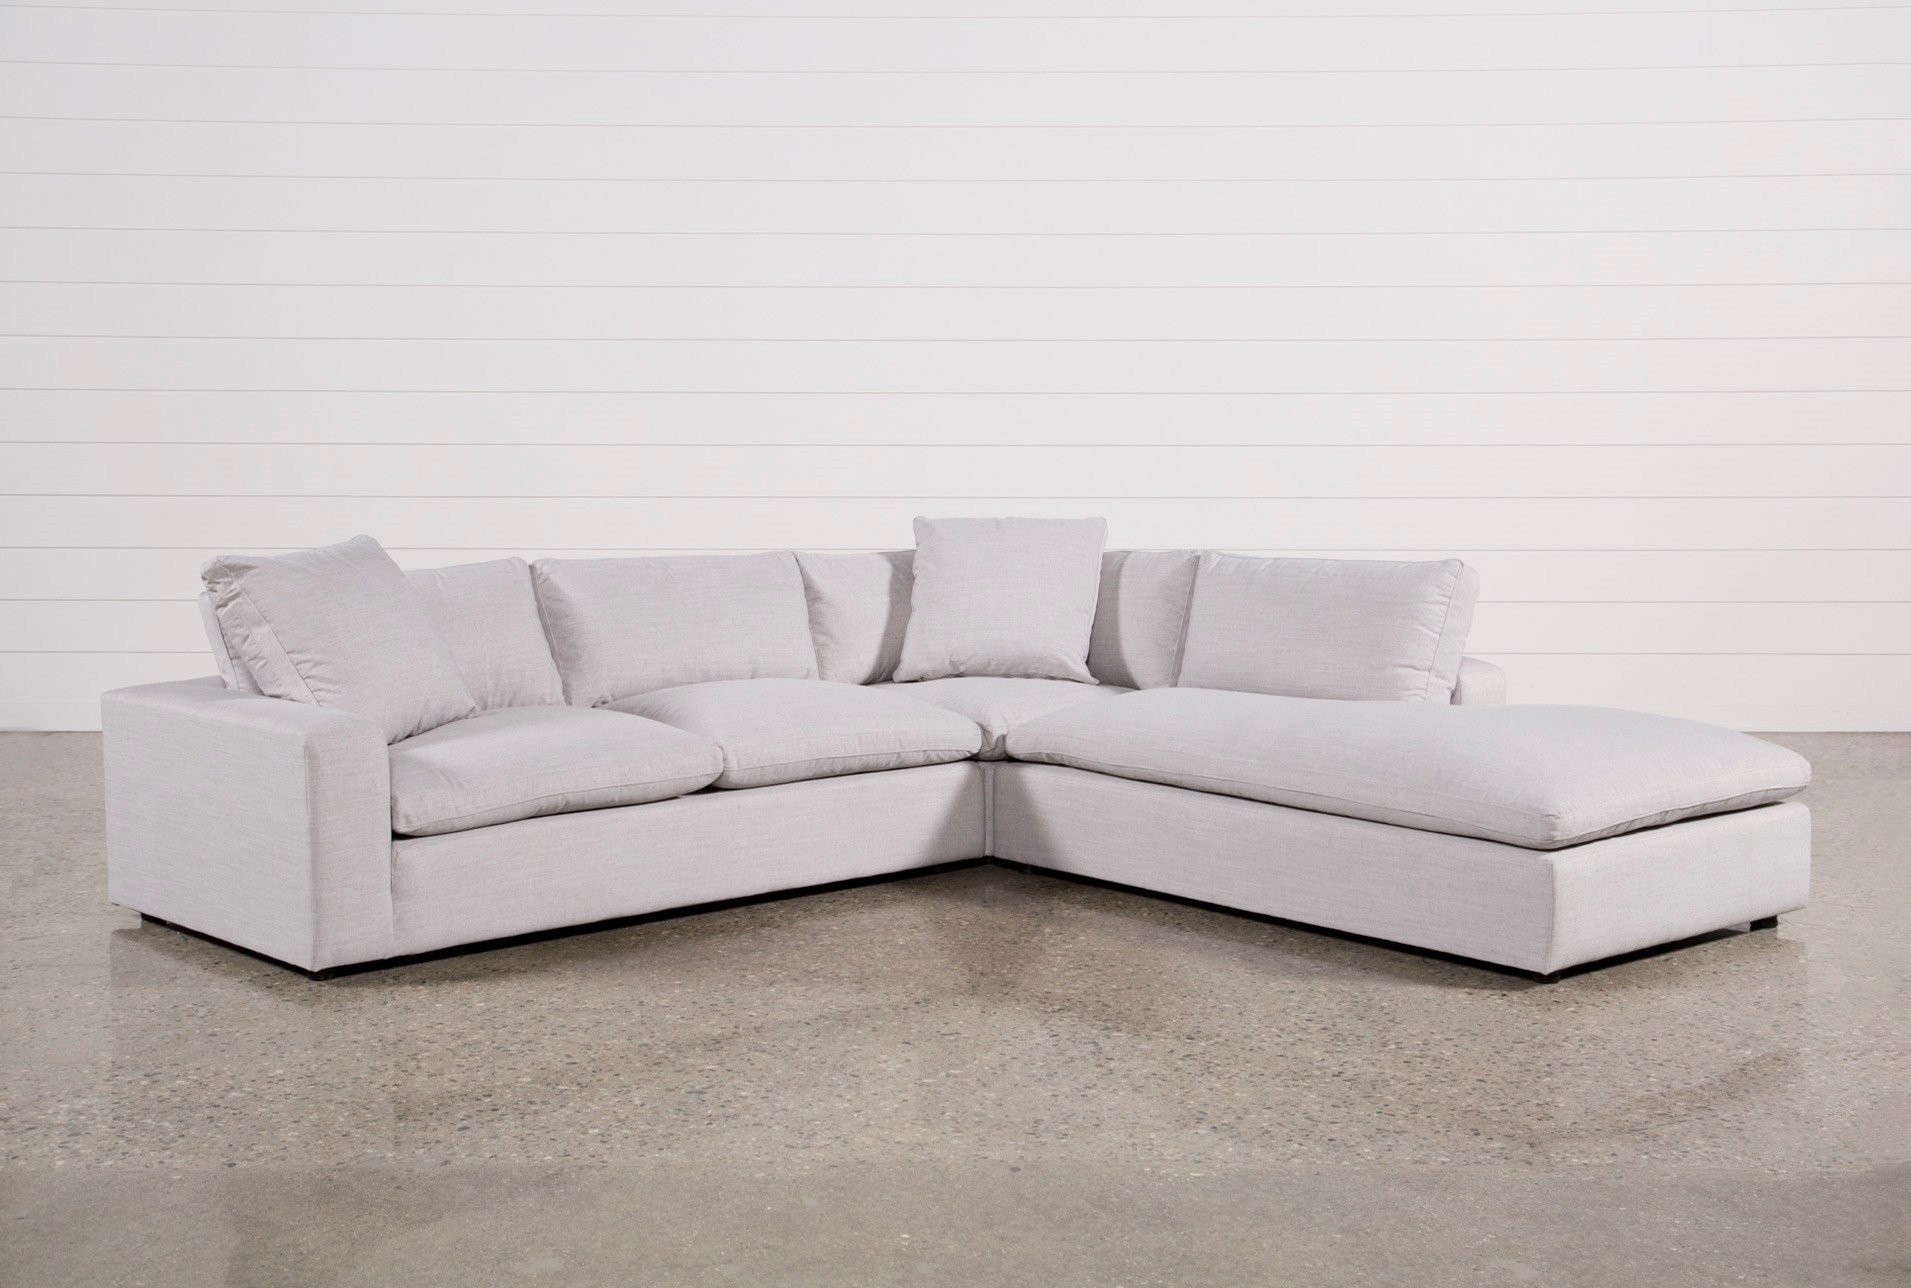 Living Spaces Sectional Sofas Kerri 2 Piece W Raf Chaise 107153 0 Regarding Kerri 2 Piece Sectionals With Laf Chaise (View 11 of 25)